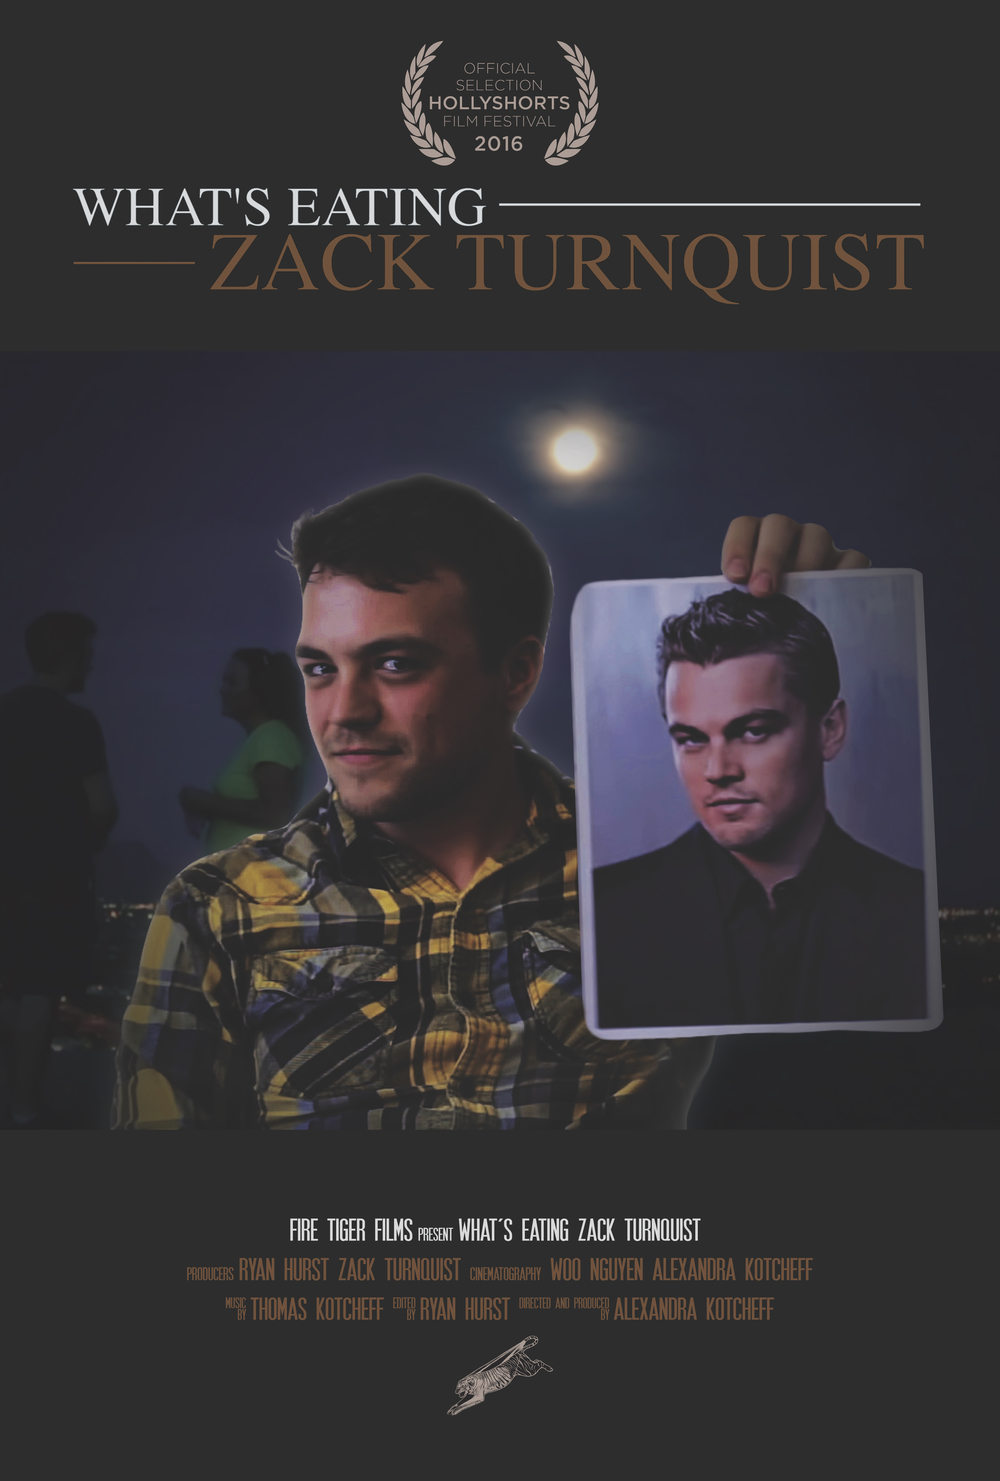 What'sEatingZackTurnquist_poster.jpg